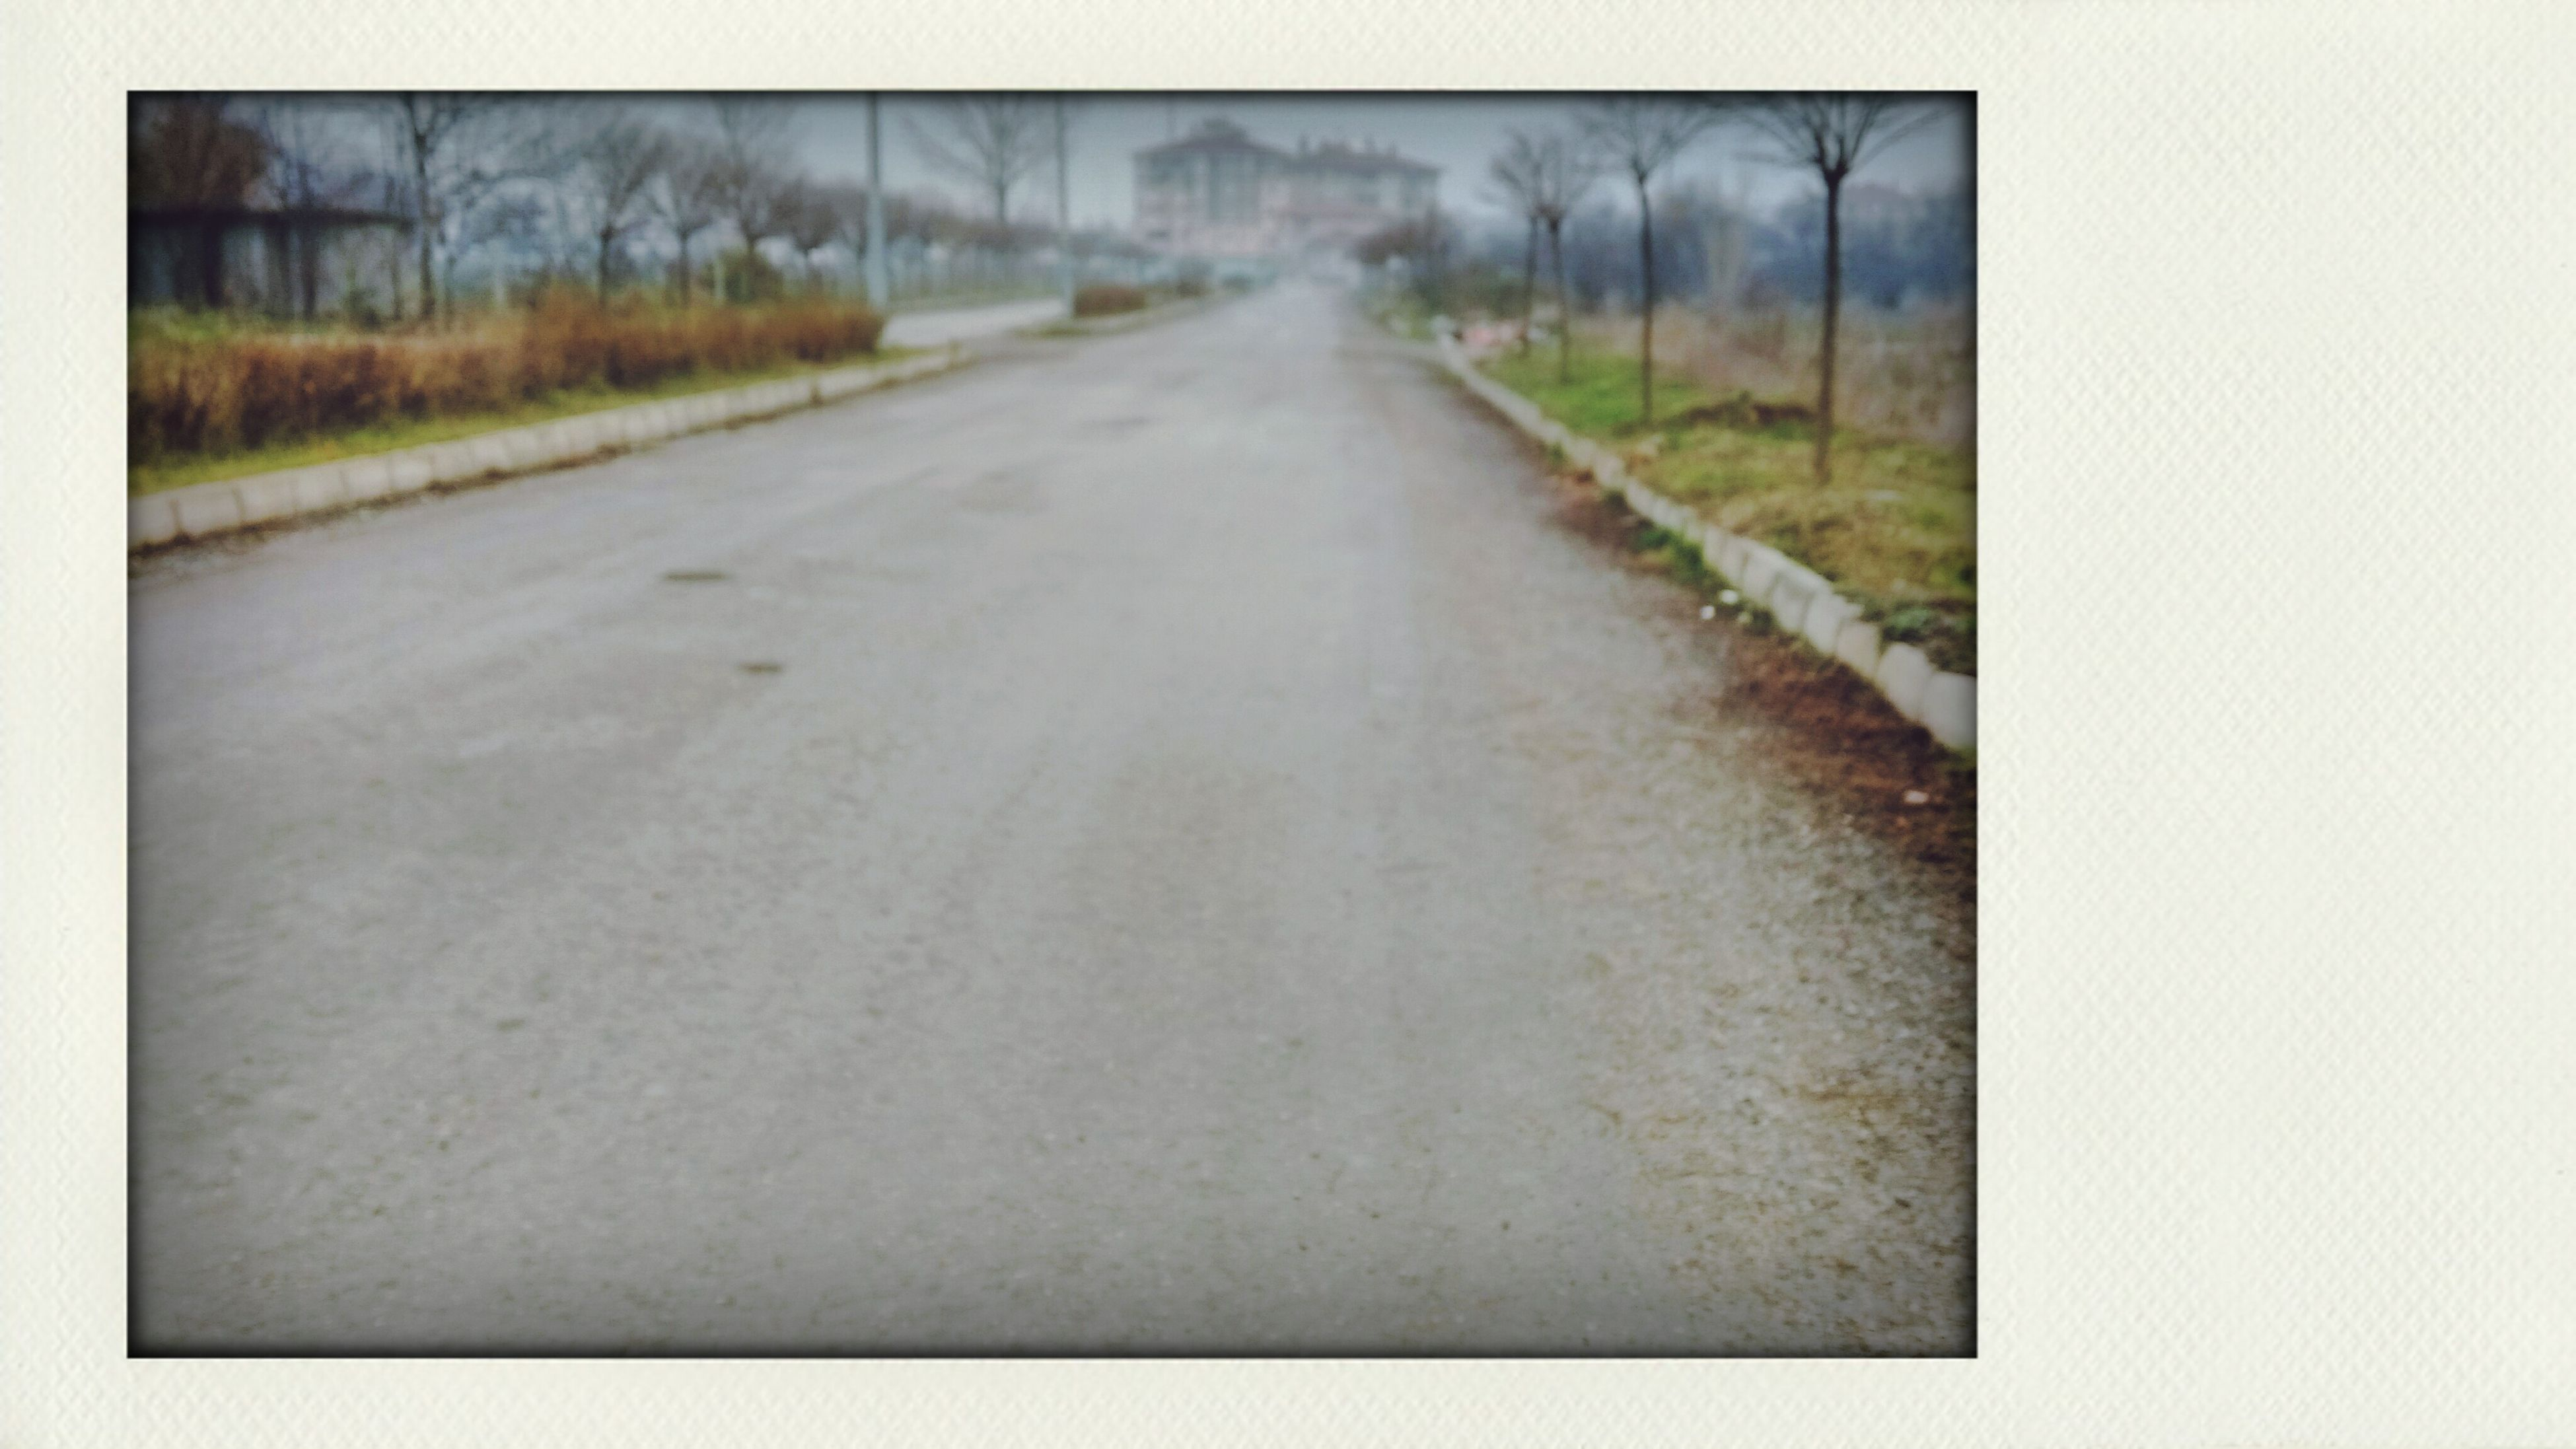 the way forward, diminishing perspective, transfer print, transportation, vanishing point, auto post production filter, road, long, day, empty, surface level, no people, empty road, nature, outdoors, weather, road marking, country road, street, railroad track